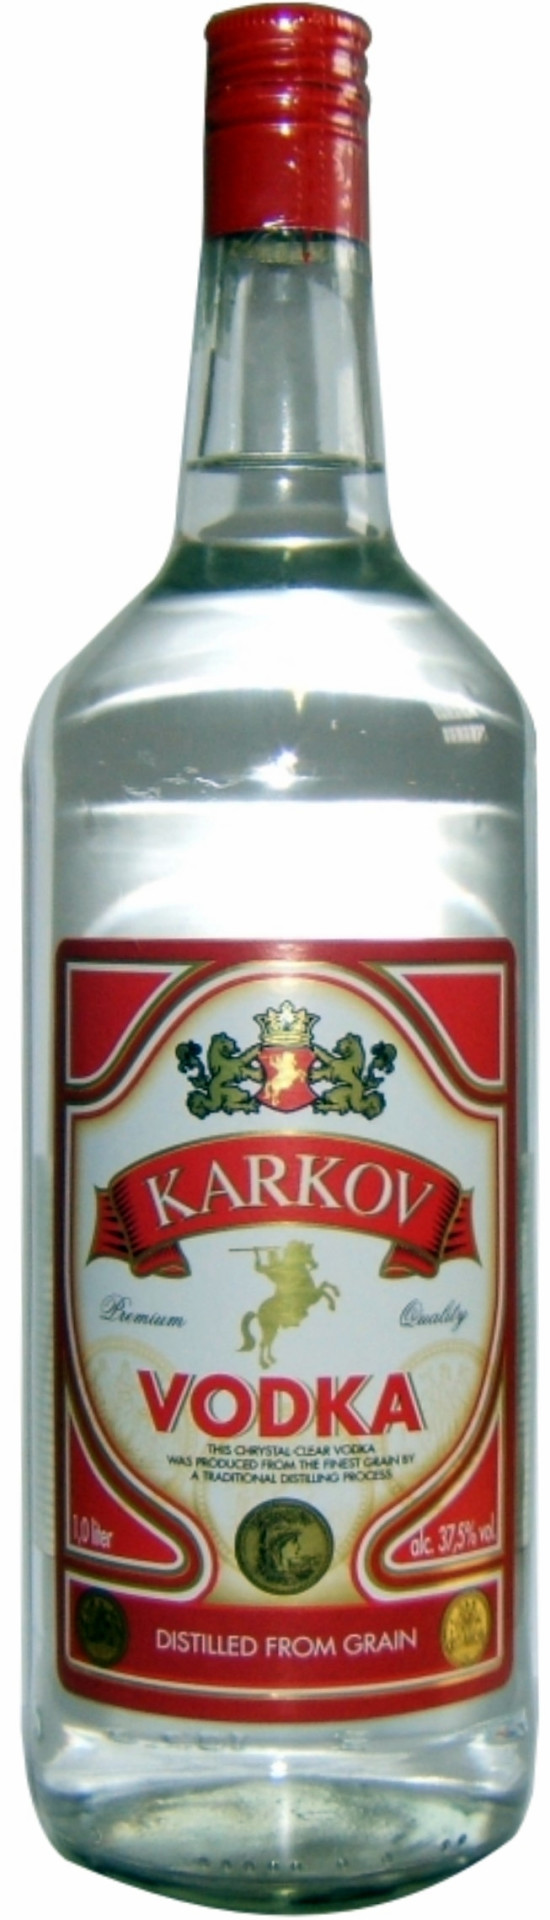 Karkov Vodka 1.0l